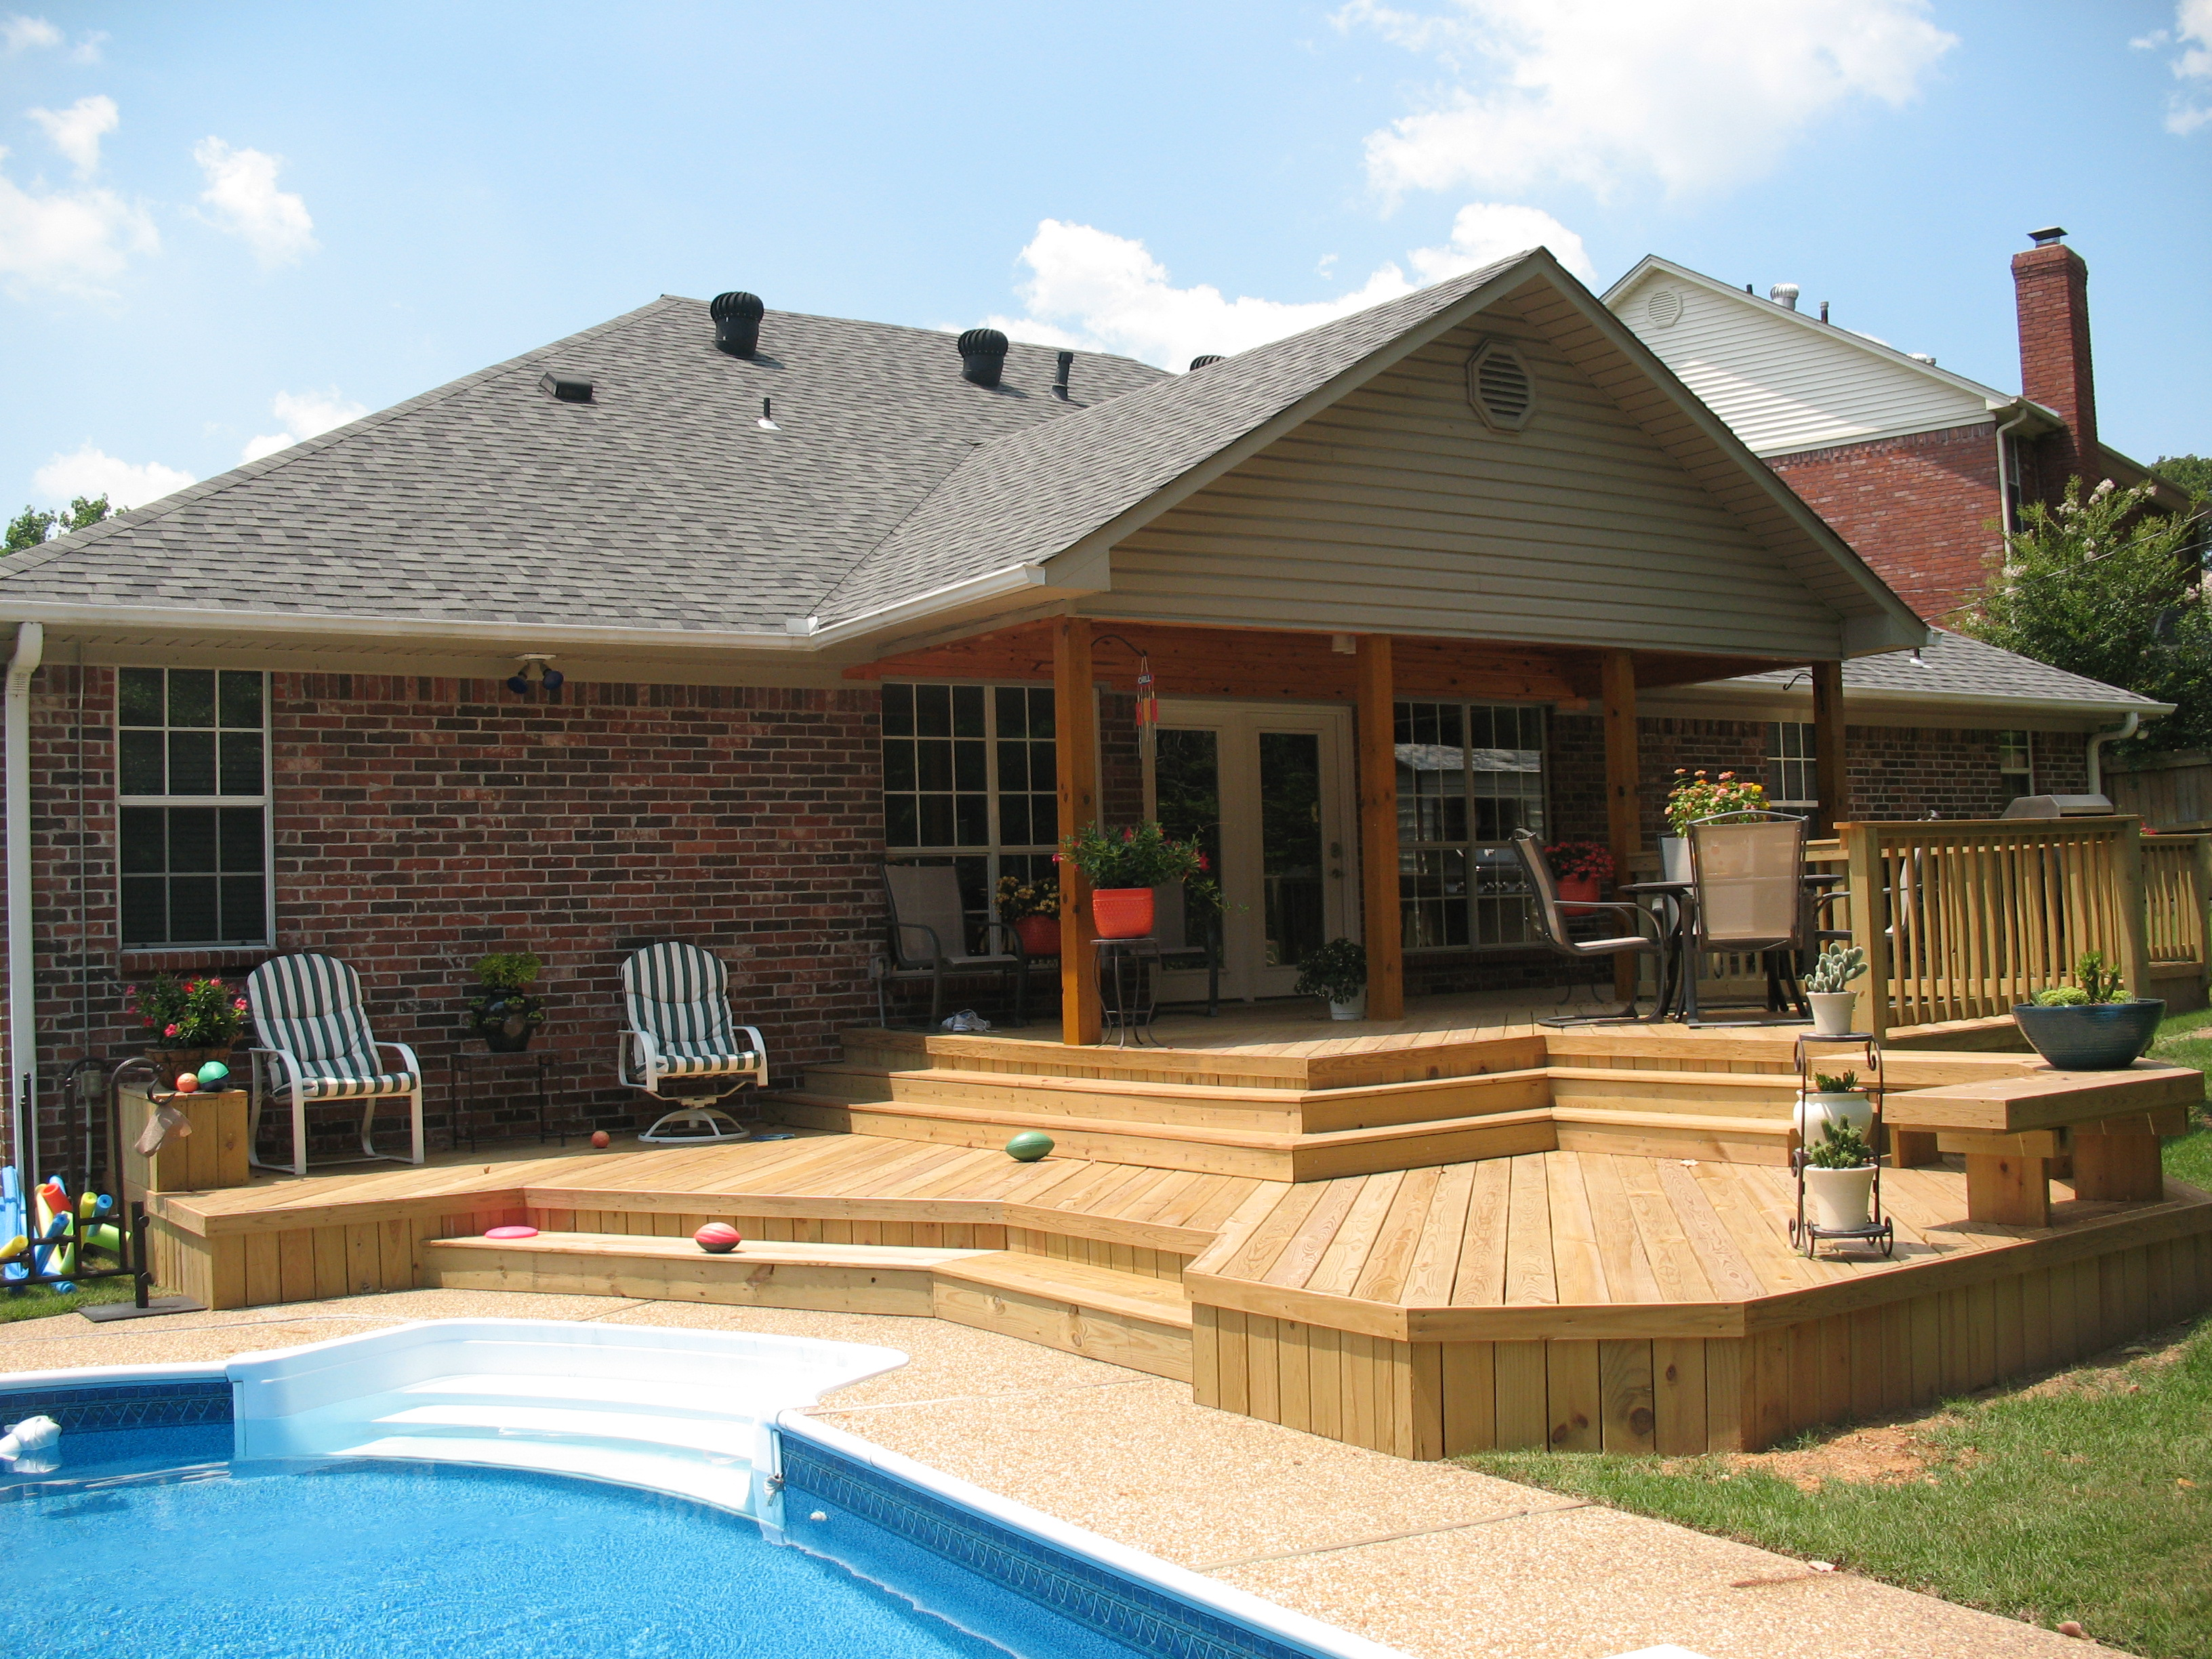 St louis mo back to basics with wood decks by archadeck for Deck architecture